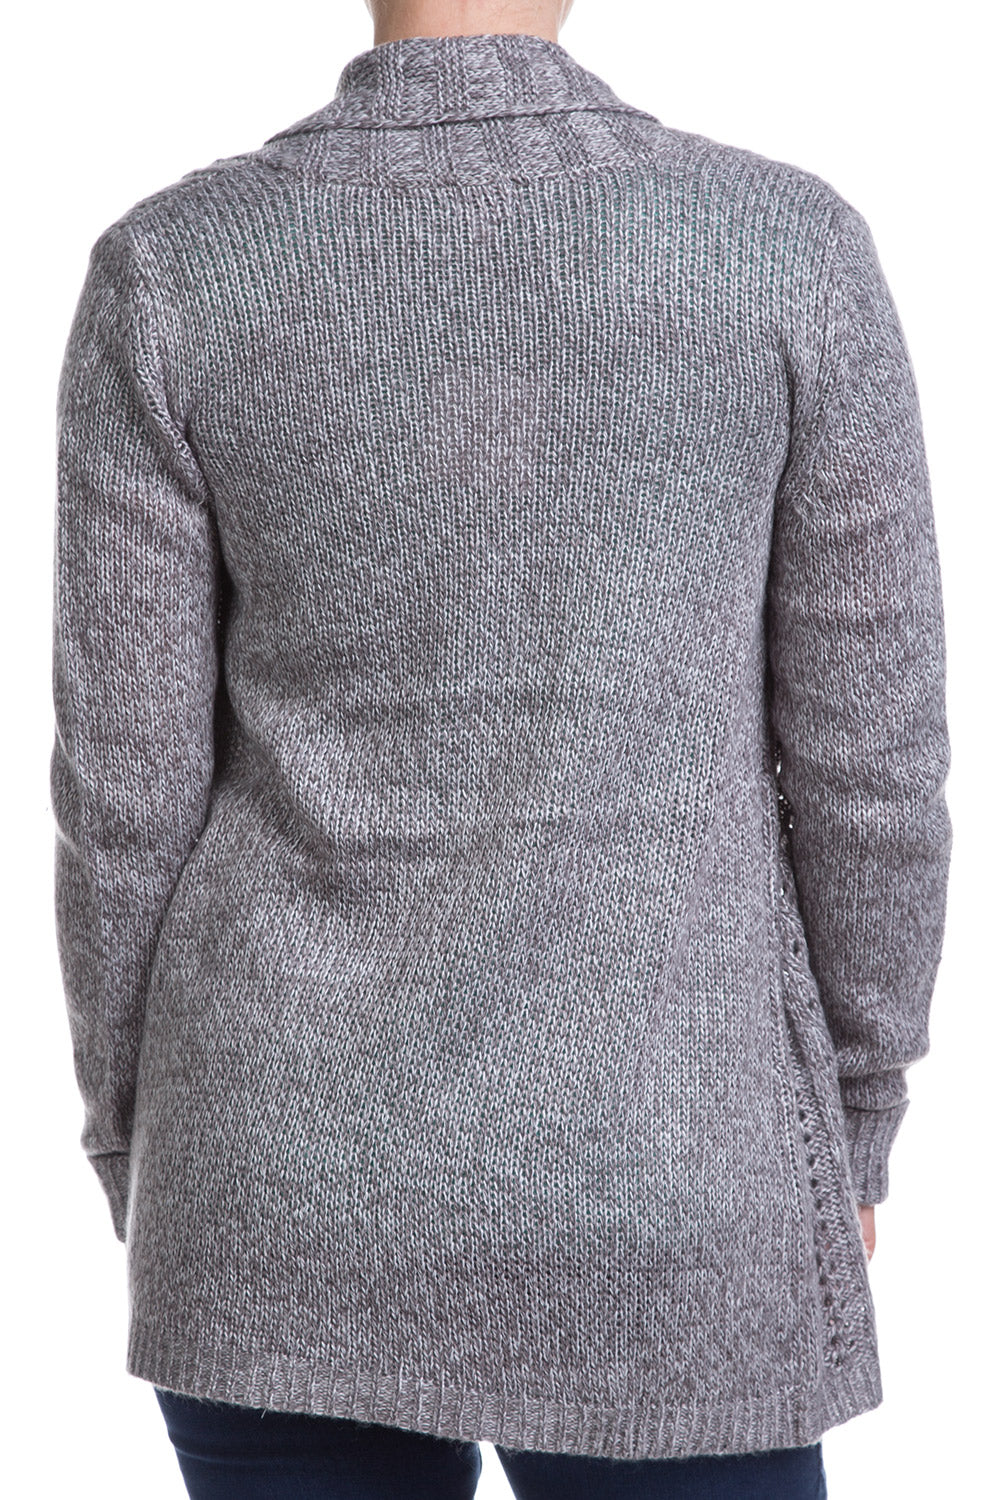 Type 2 Mindful Comfort Sweater